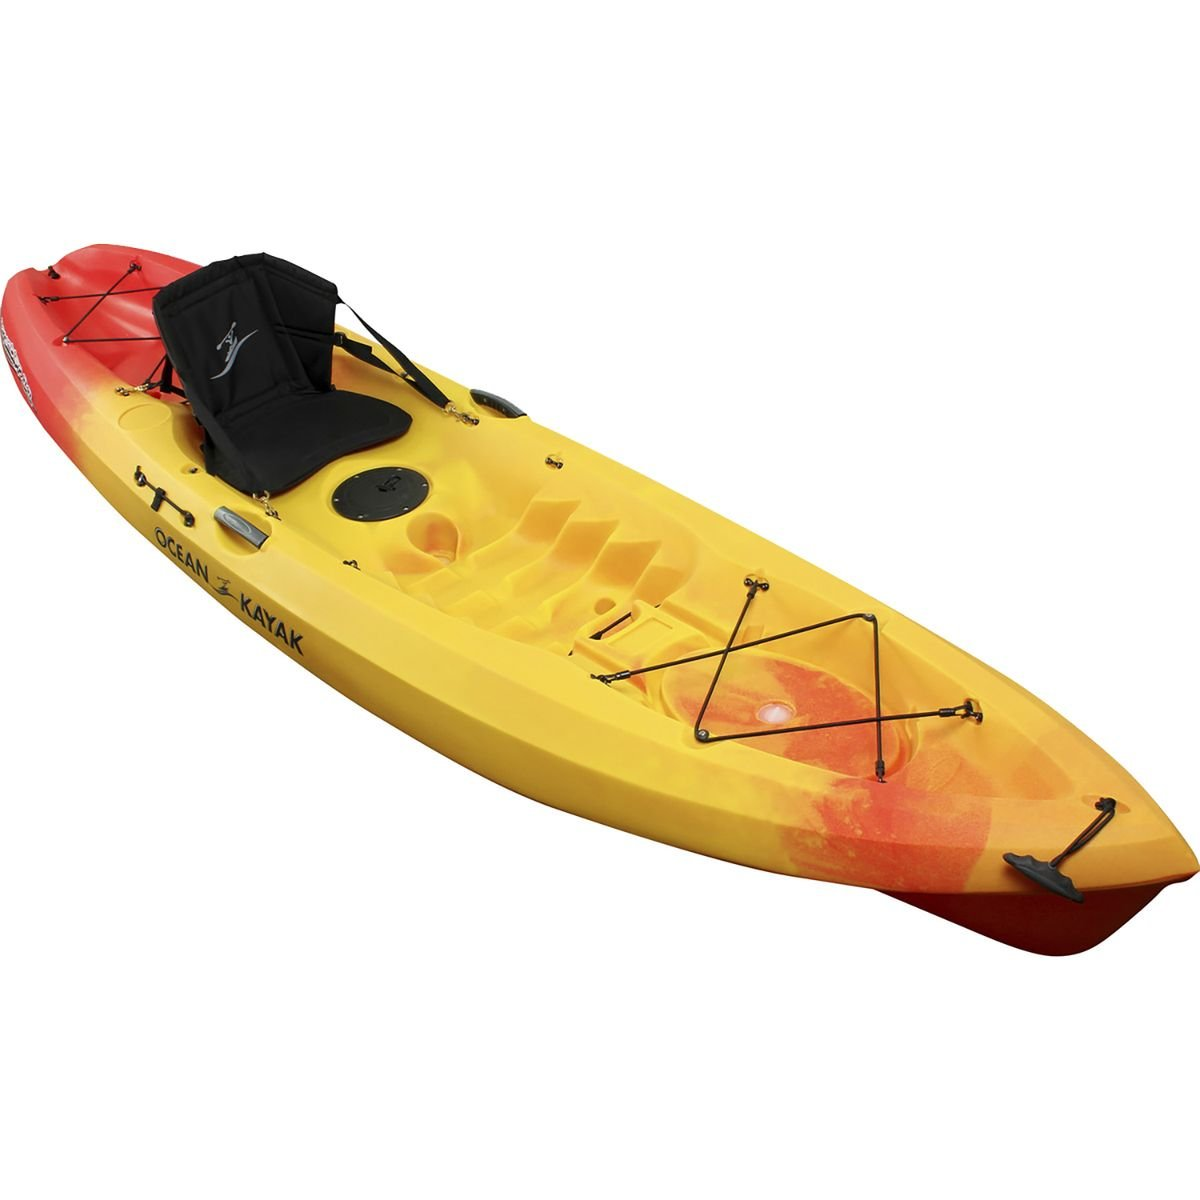 Amazon Ocean Kayak Scrambler 11 Sit On Top Recreational Sunrise Sports Outdoors